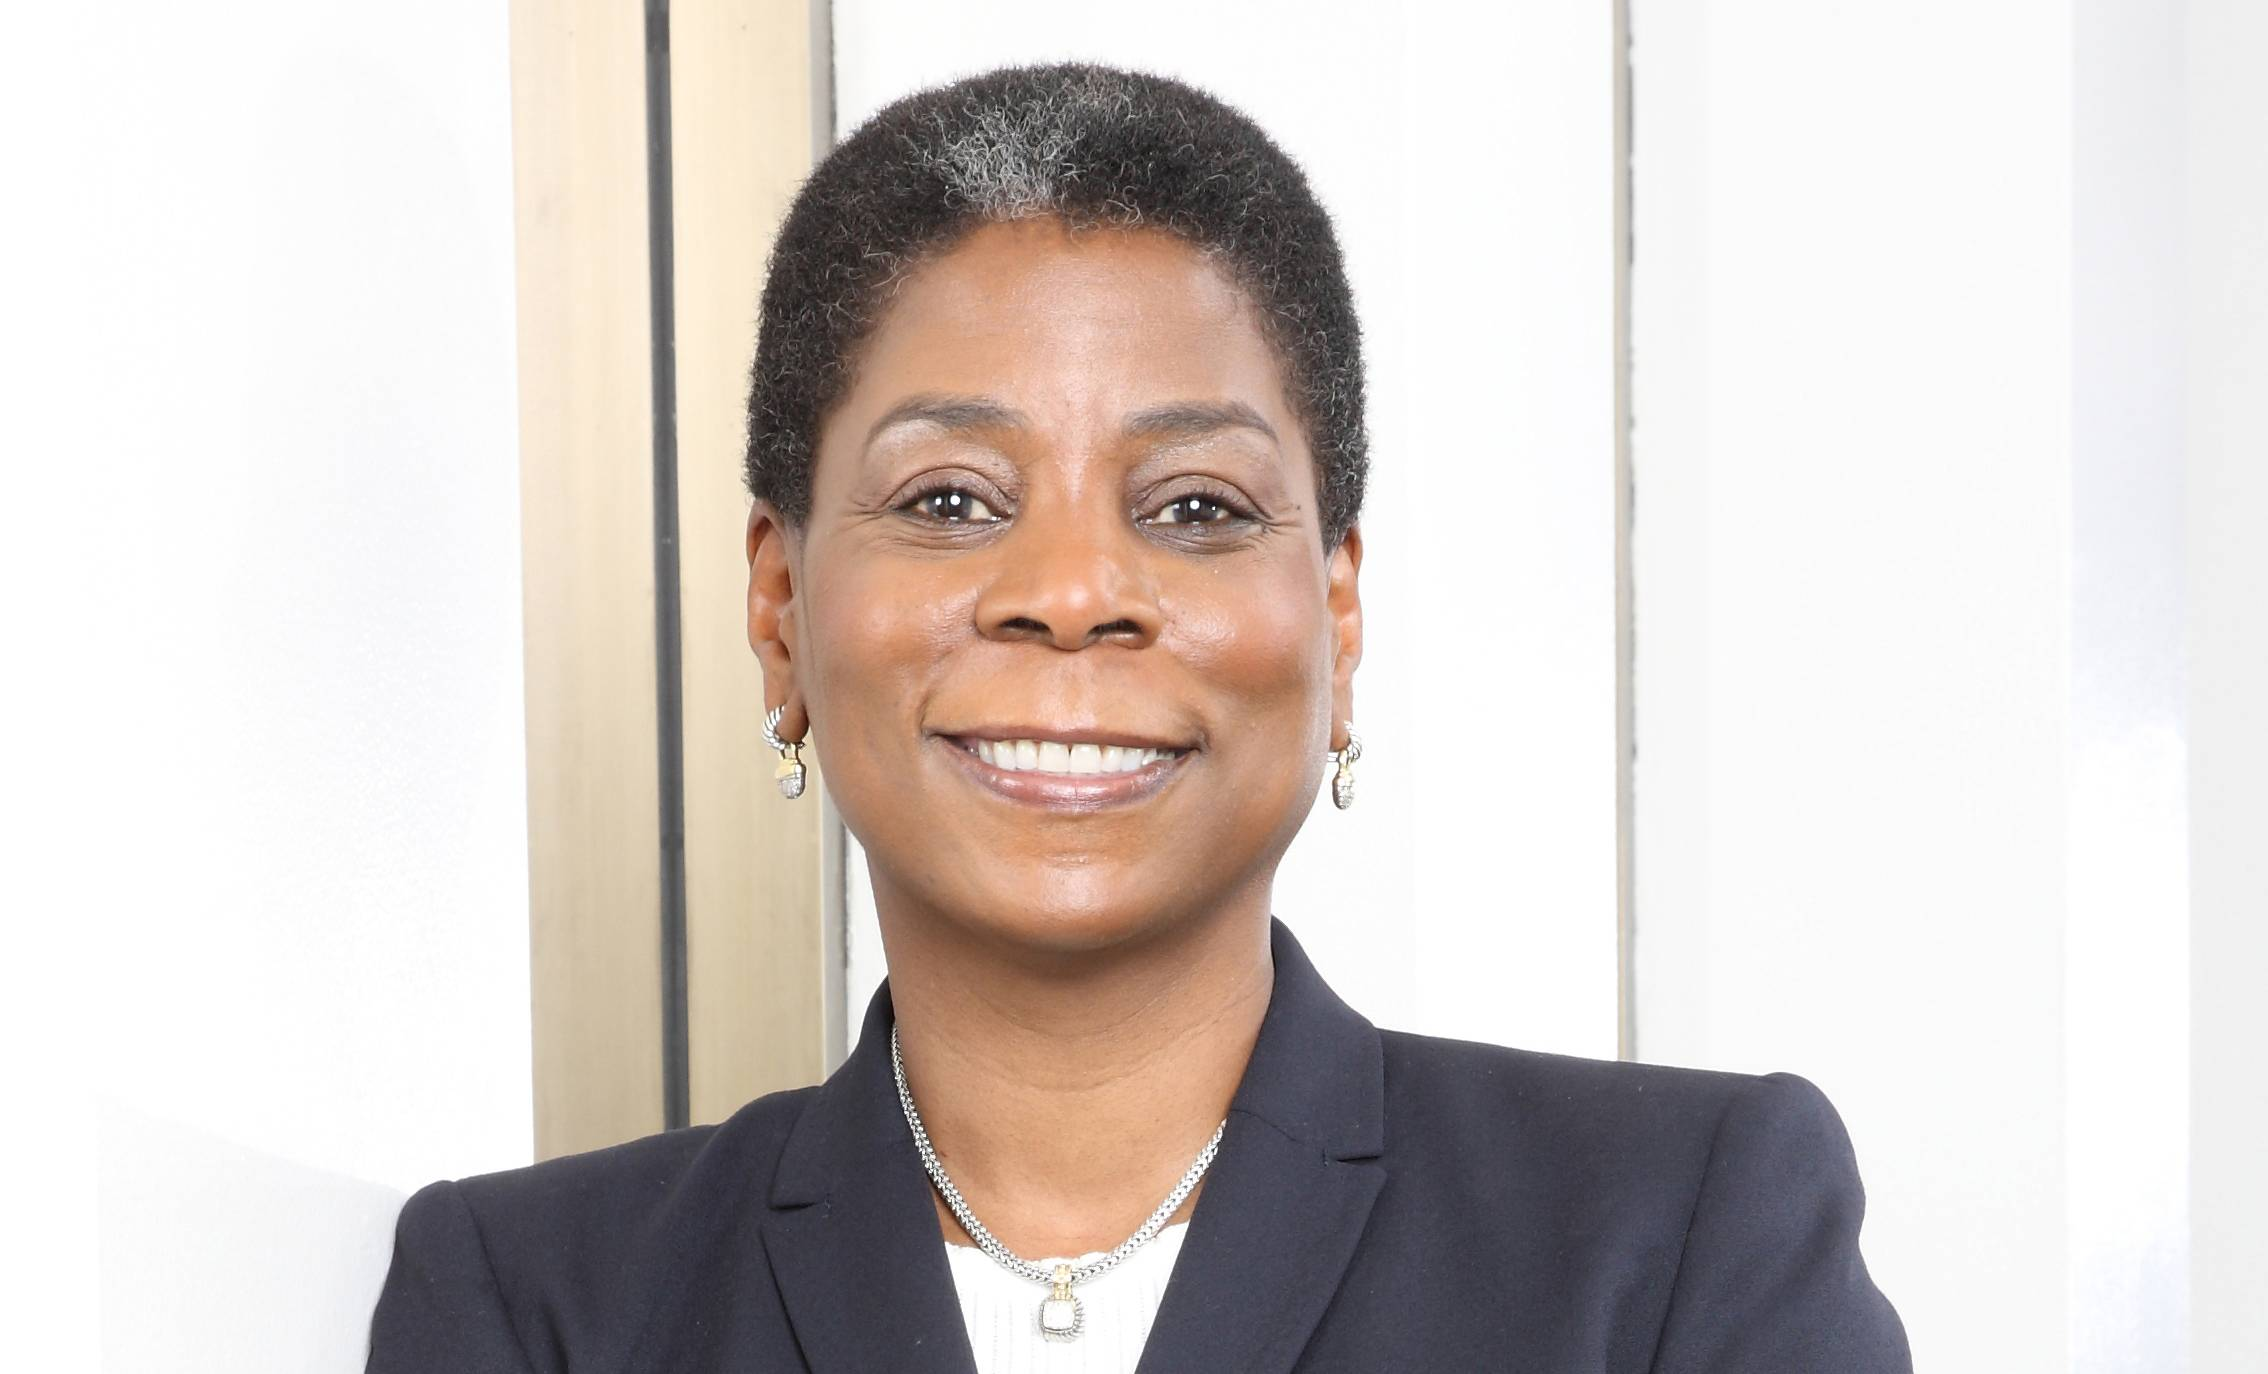 <h1>Ursula Burns</h1> Burns has successfully transformed the printing company: Over half its $22 billion in revenue comes from services such as customer care and IT outsourcing. But Xerox's traditional docu-ment business is struggling, causing profits to drop 8% last year.